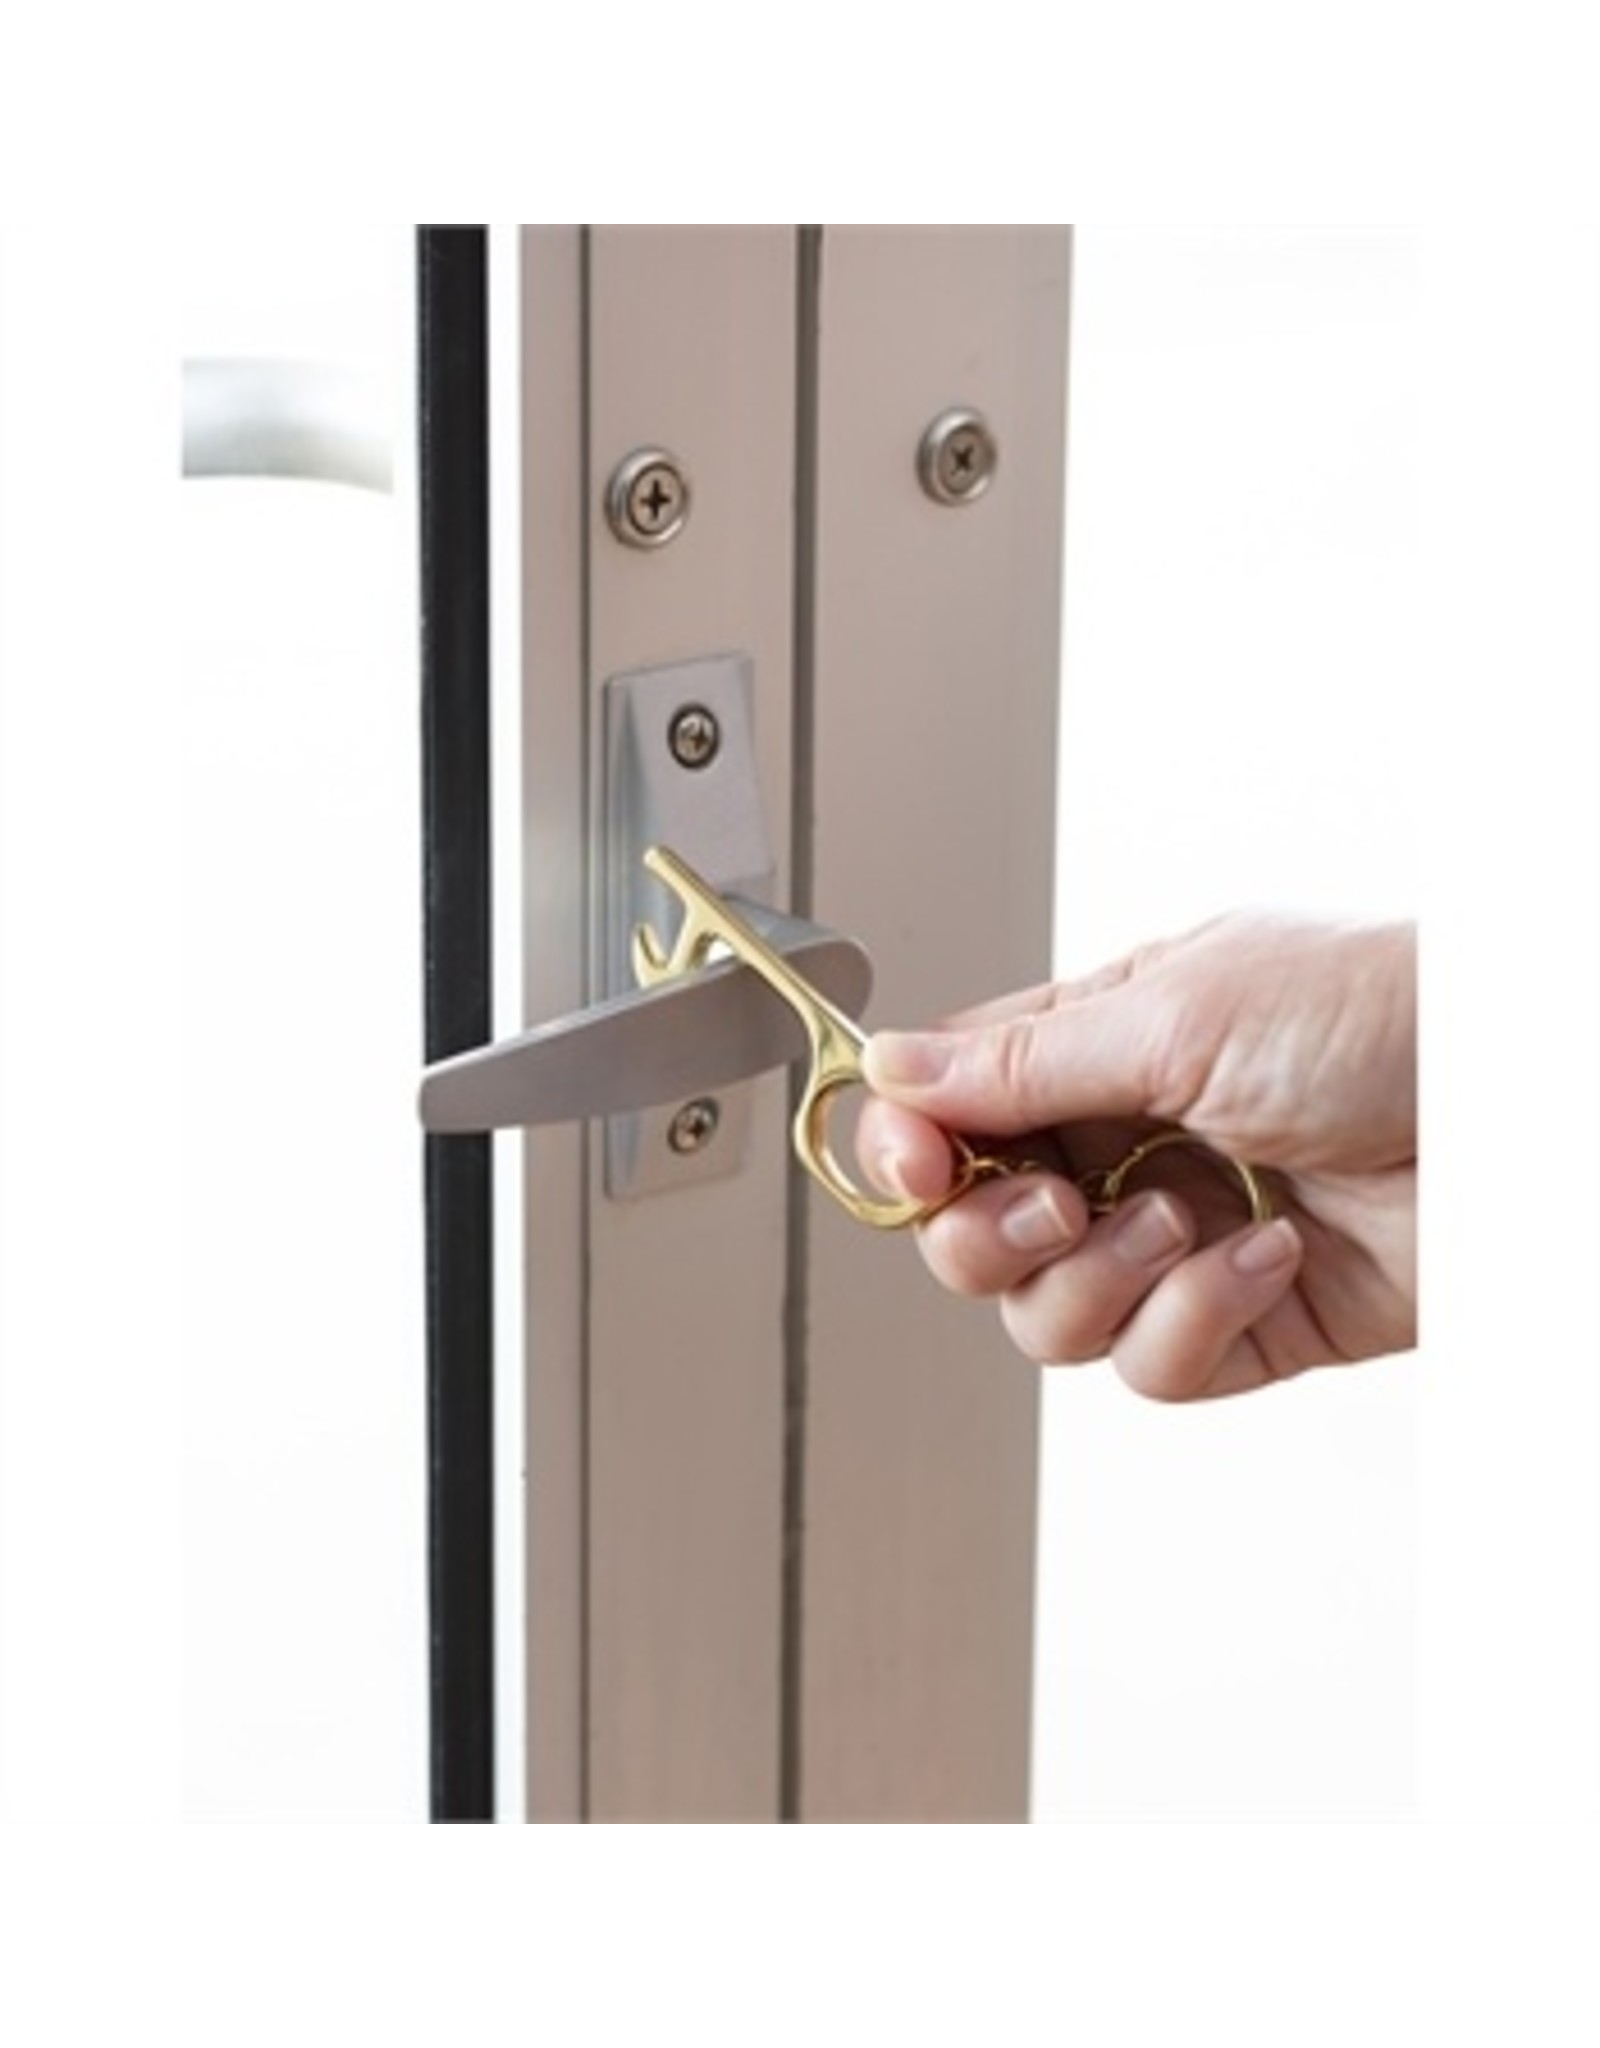 Evergreen Enterprises Antimicrobial Touchless Door Opener/ Button Pusher